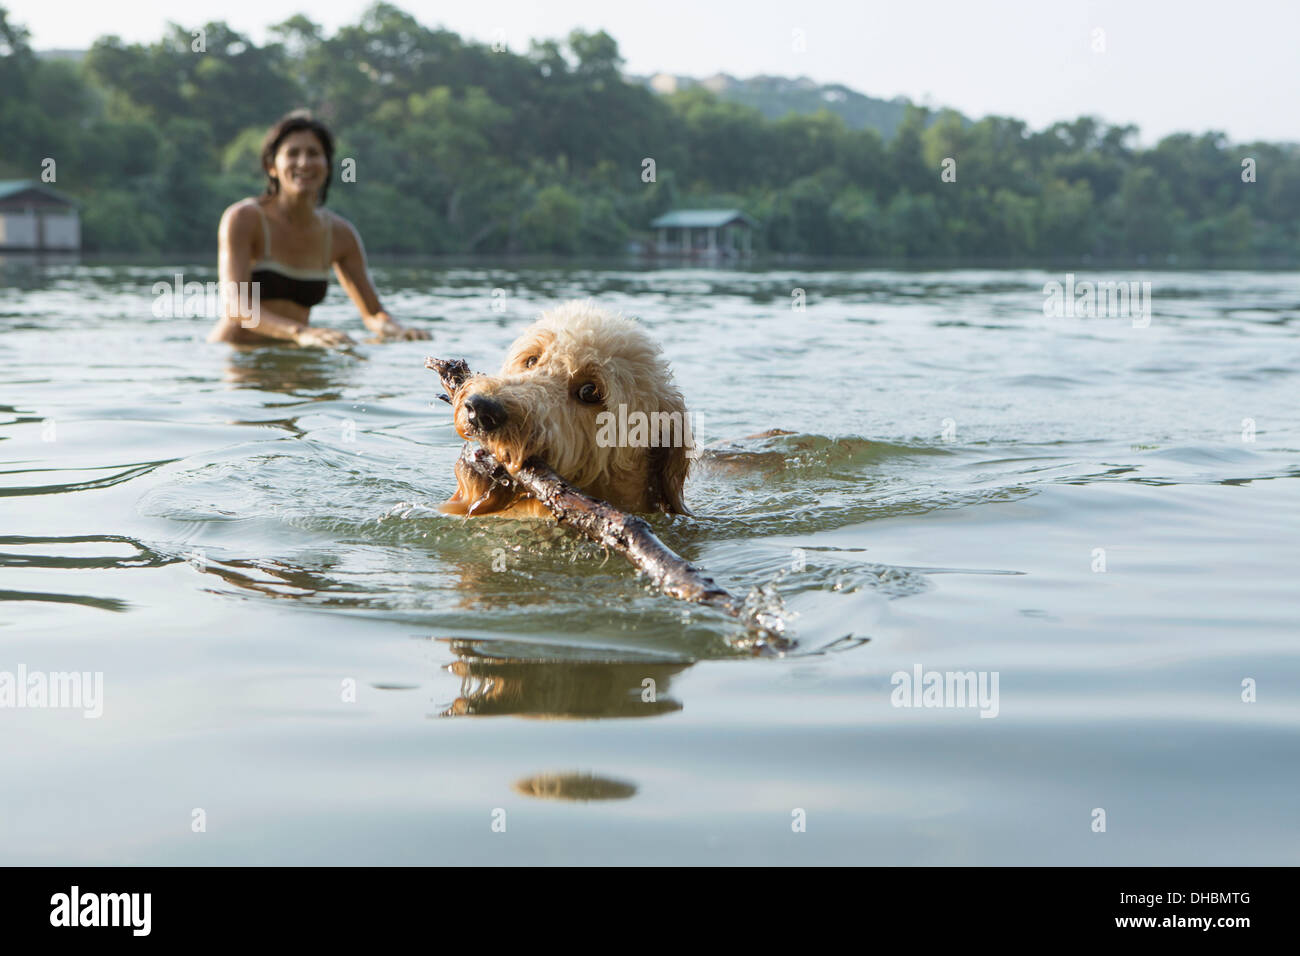 A labradoodle dog swimming with a stick in her mouth. A woman in the background. - Stock Image